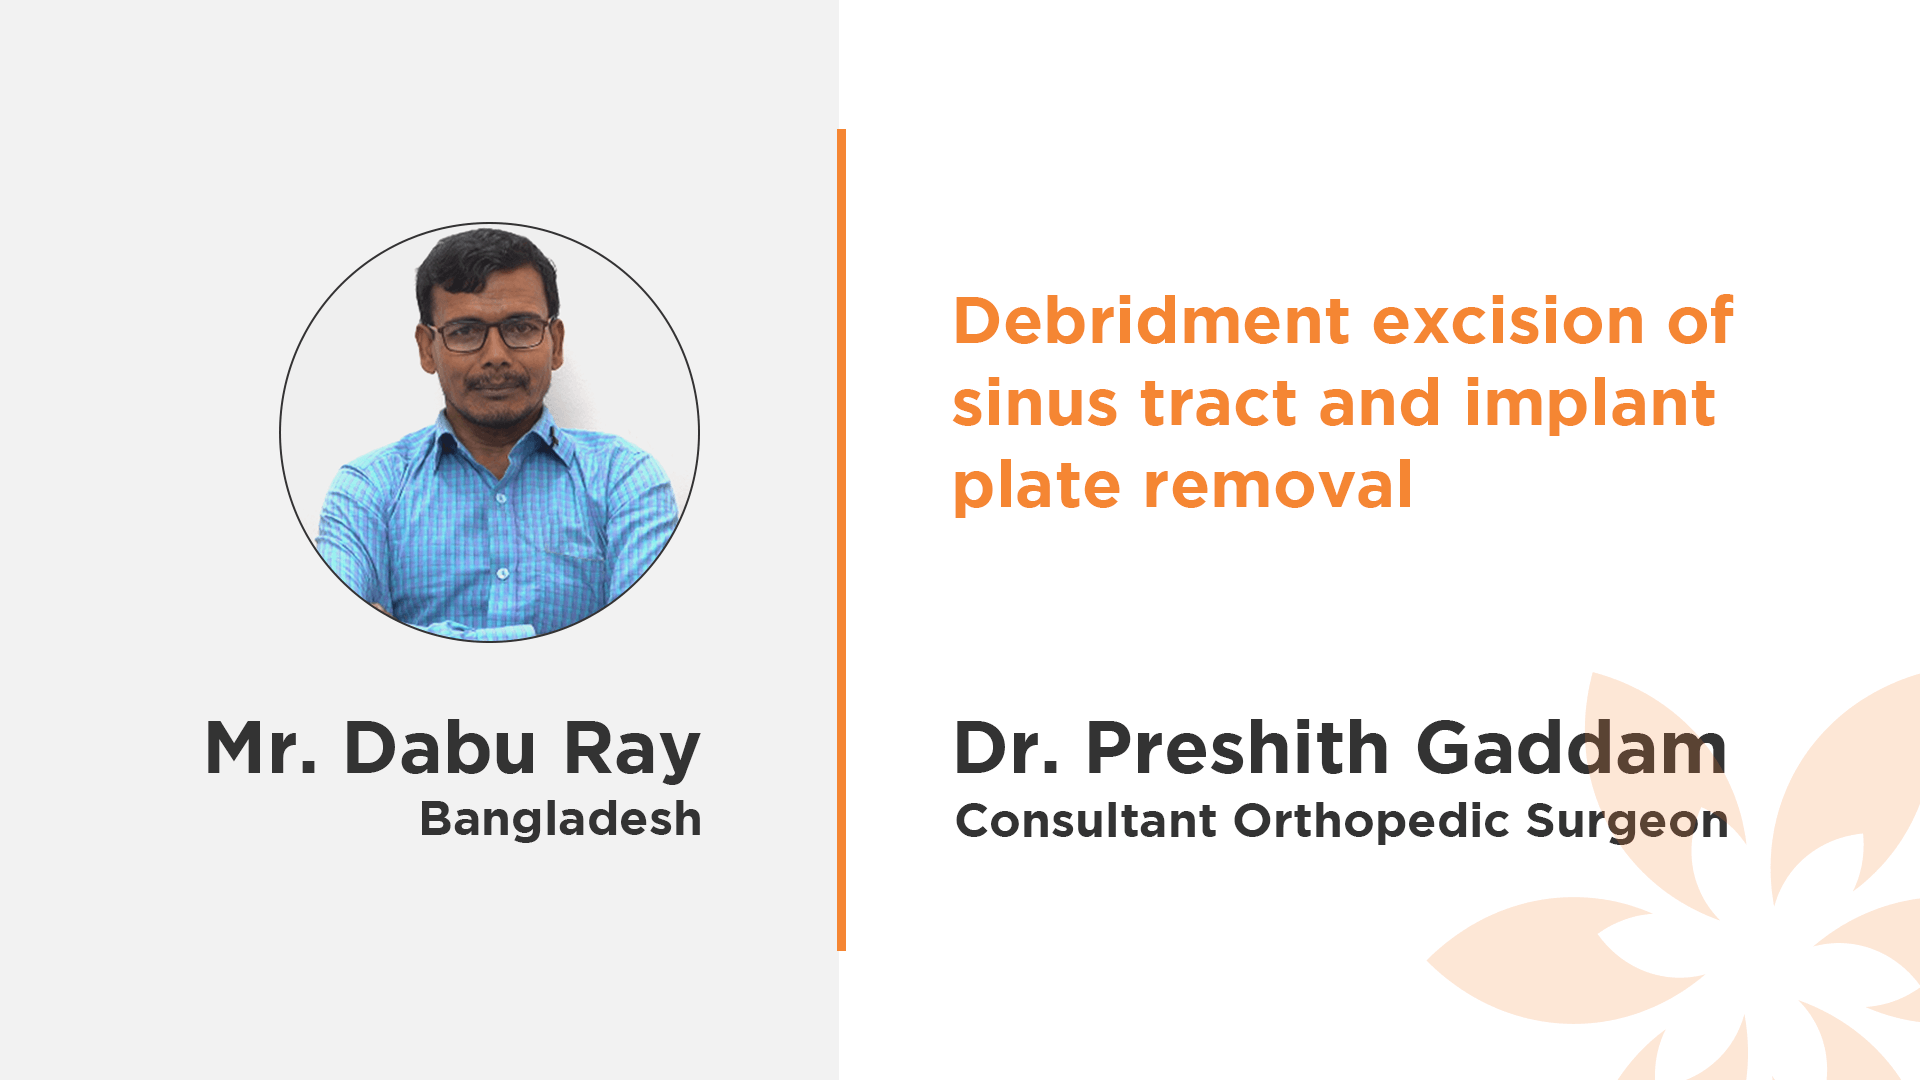 Mr. Dabu Ray - Dr. Preshith Gaddam